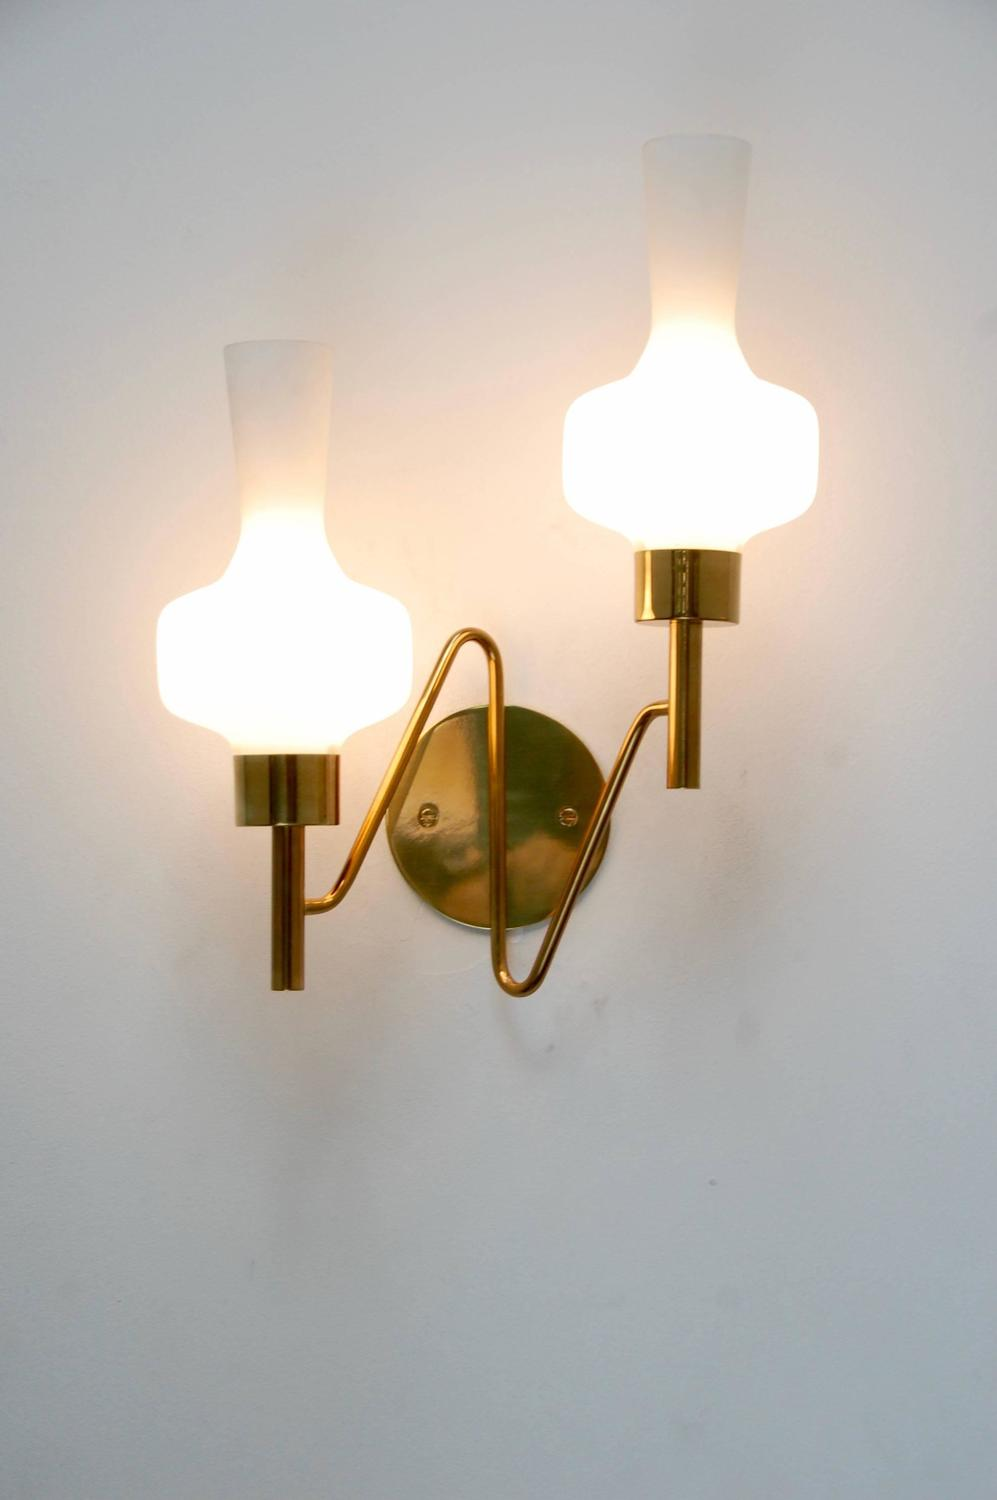 Double Wall Sconce With Shades : Classic Italian Double Shade Sconce For Sale at 1stdibs